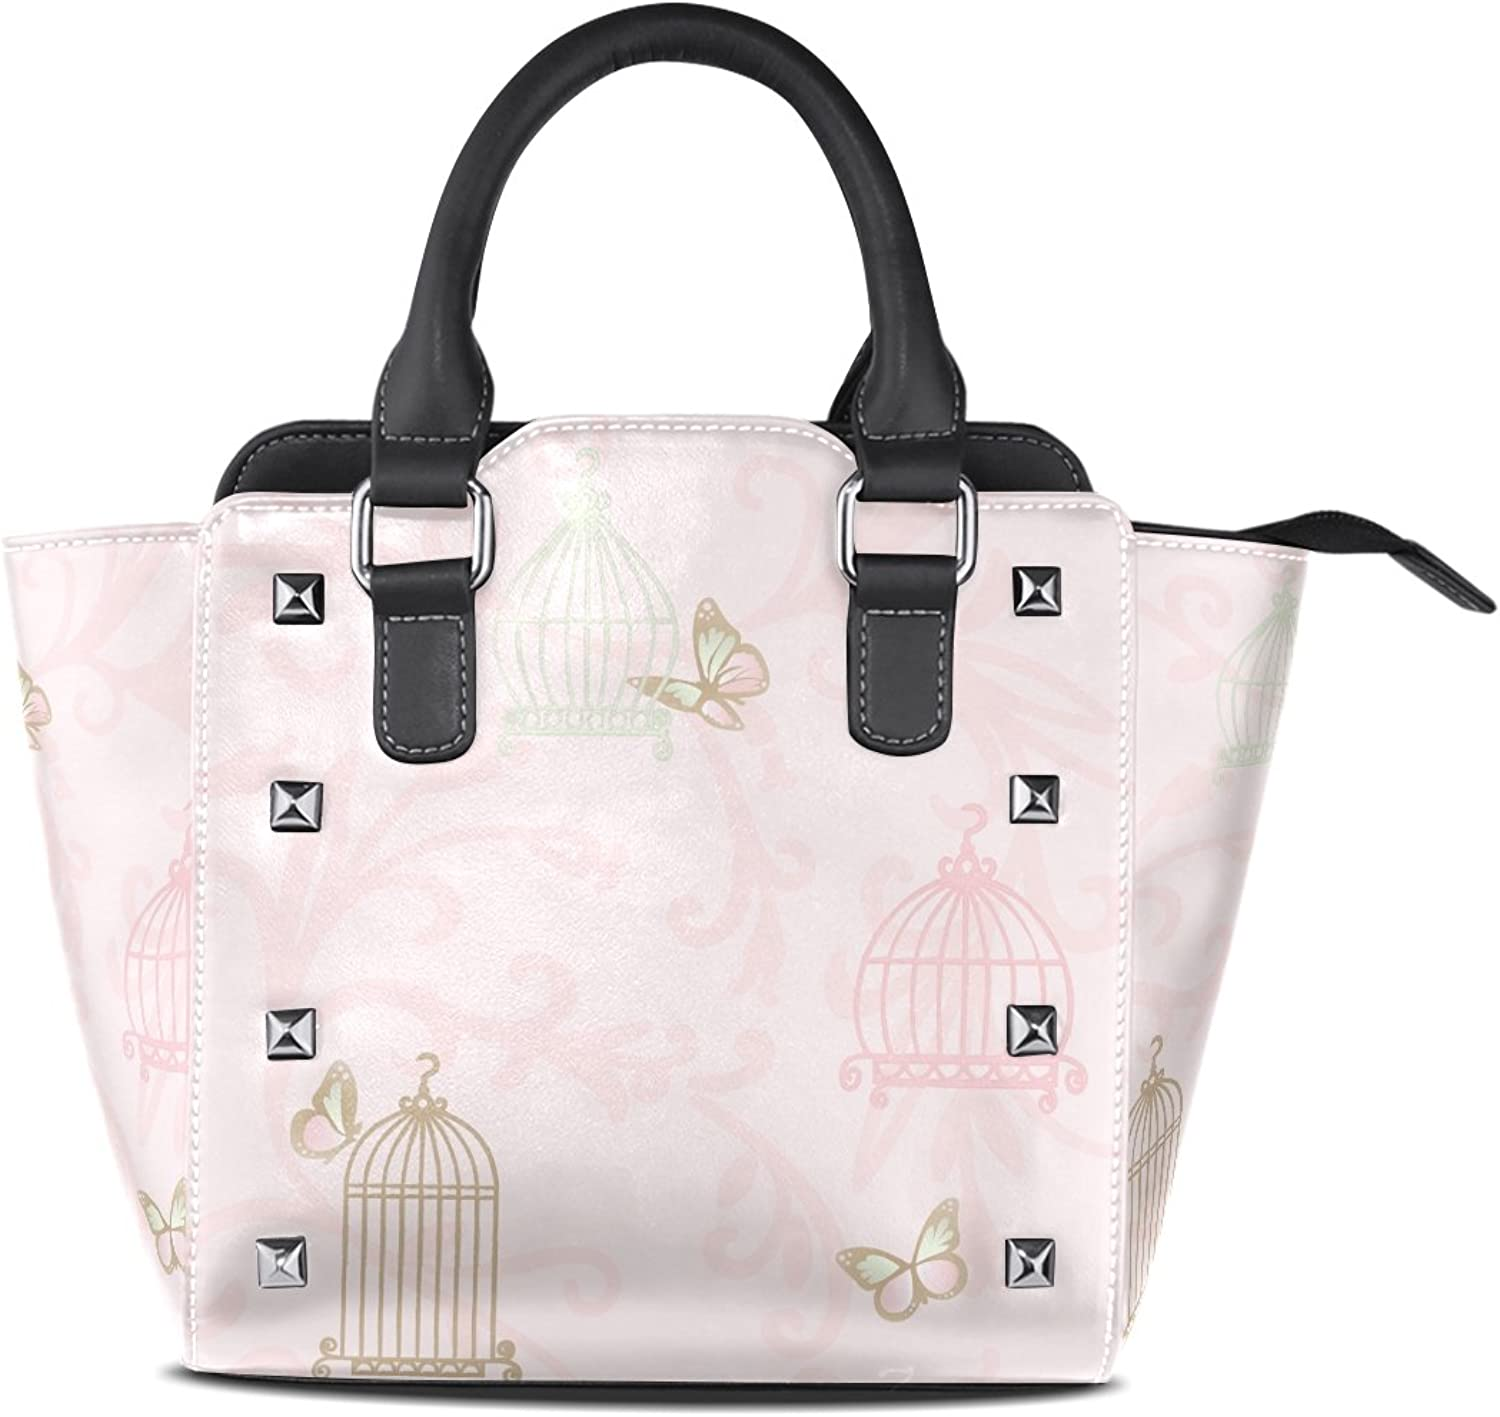 Sunlome Retro Butterfly Birdcage Print Women's Leather Tote Shoulder Bags Handbags